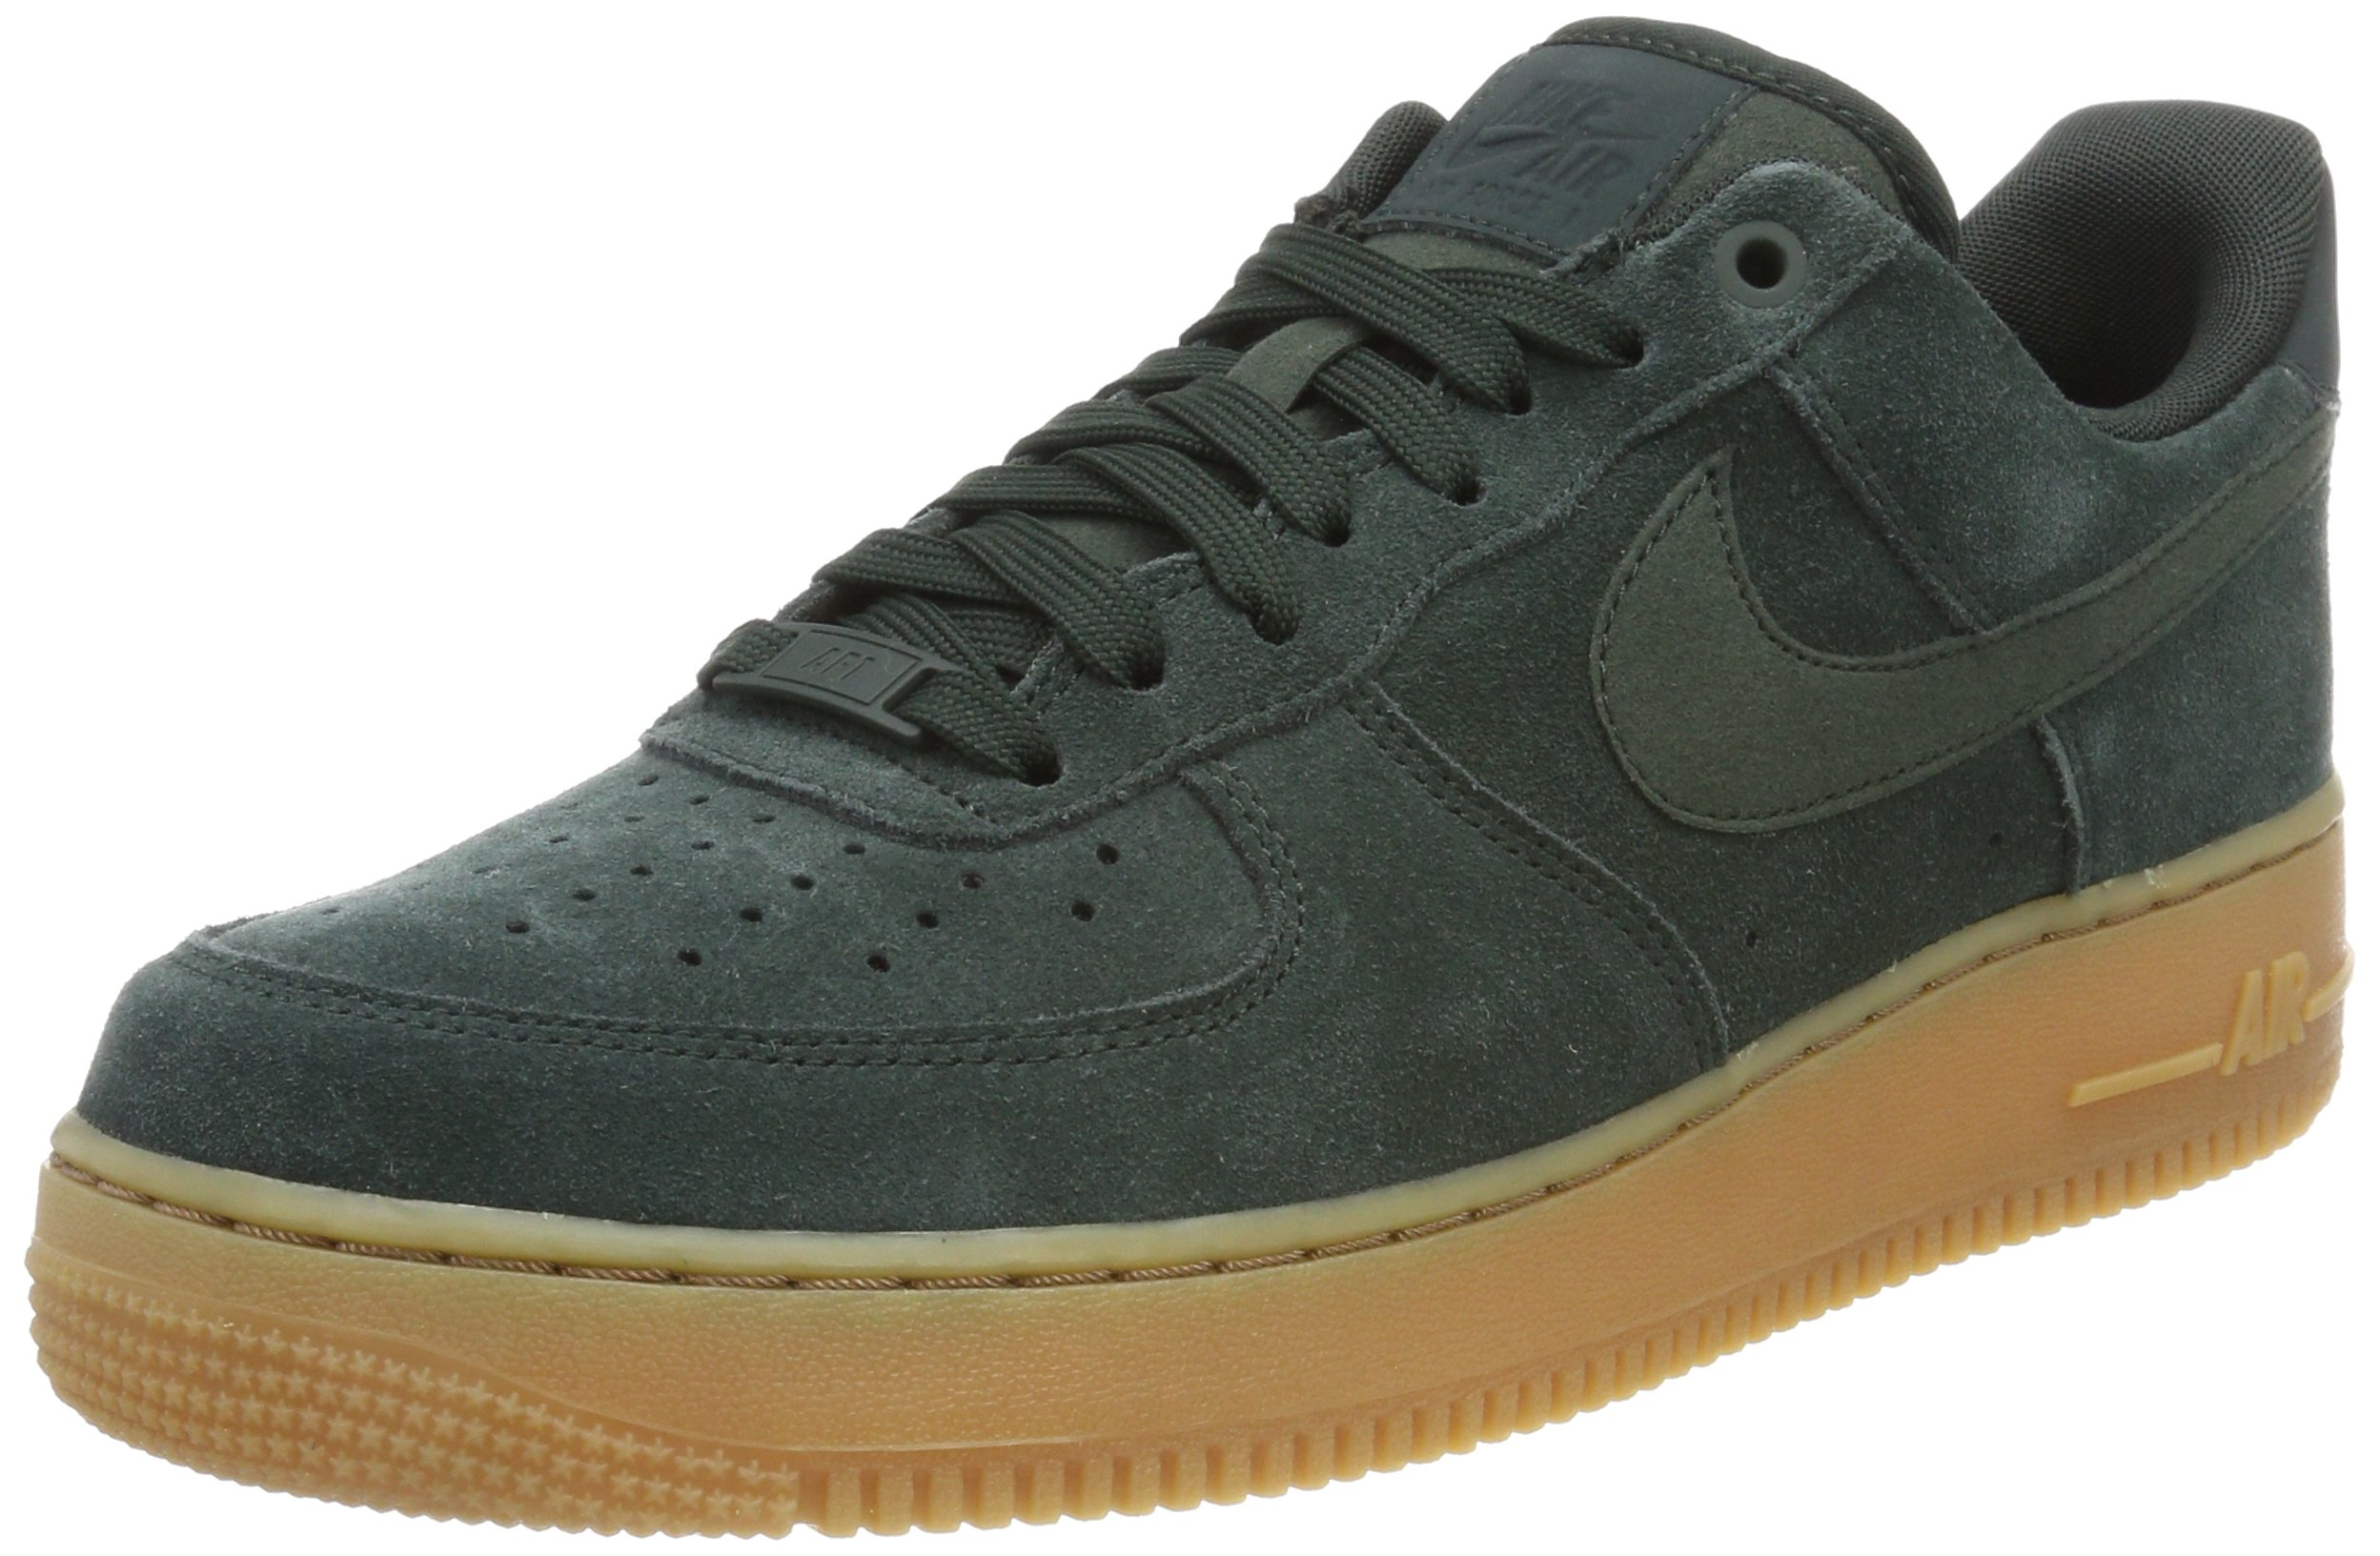 official photos b866b 73e6f Galleon - NIKE Air Force 1  07 LV8 Suede Mens Basketball Shoes Outdoor  Green Outdoor Green Aa1117-300 (10.5 D(M) US)